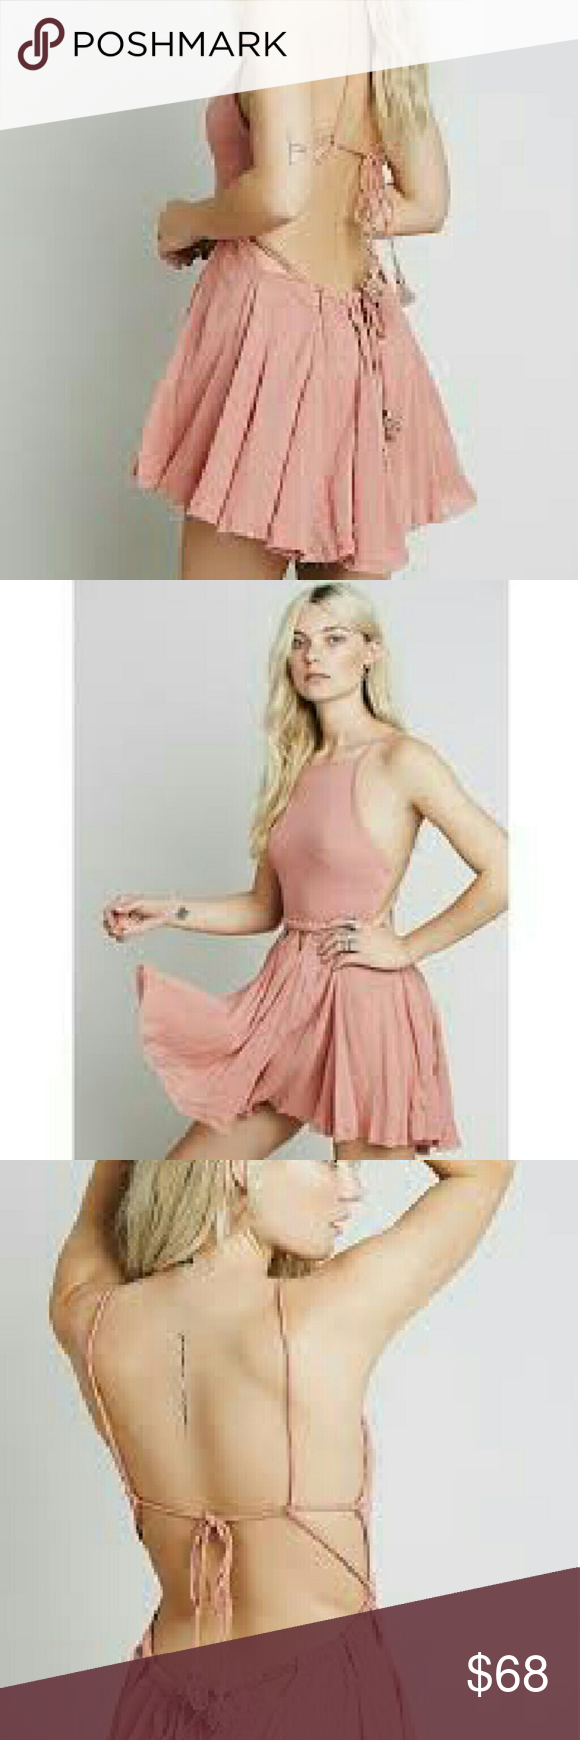 FREE PEOPLE Live for your smile  SMALL $78 Made from our sheer and gauzy Endless Summer fabric, this fit-and-flare mini dress features cutouts around the waist. Open strappy back with adjustable ties. Raw trim. Throw on top of a bikini or layer over one of our seamless styles for an effortless look. An Endless Summer- Whether you live the beach lifestyle year-round or dream of making the great escape, explore the collection of our most effortlessly ethereal style. Free People Dresses Midi